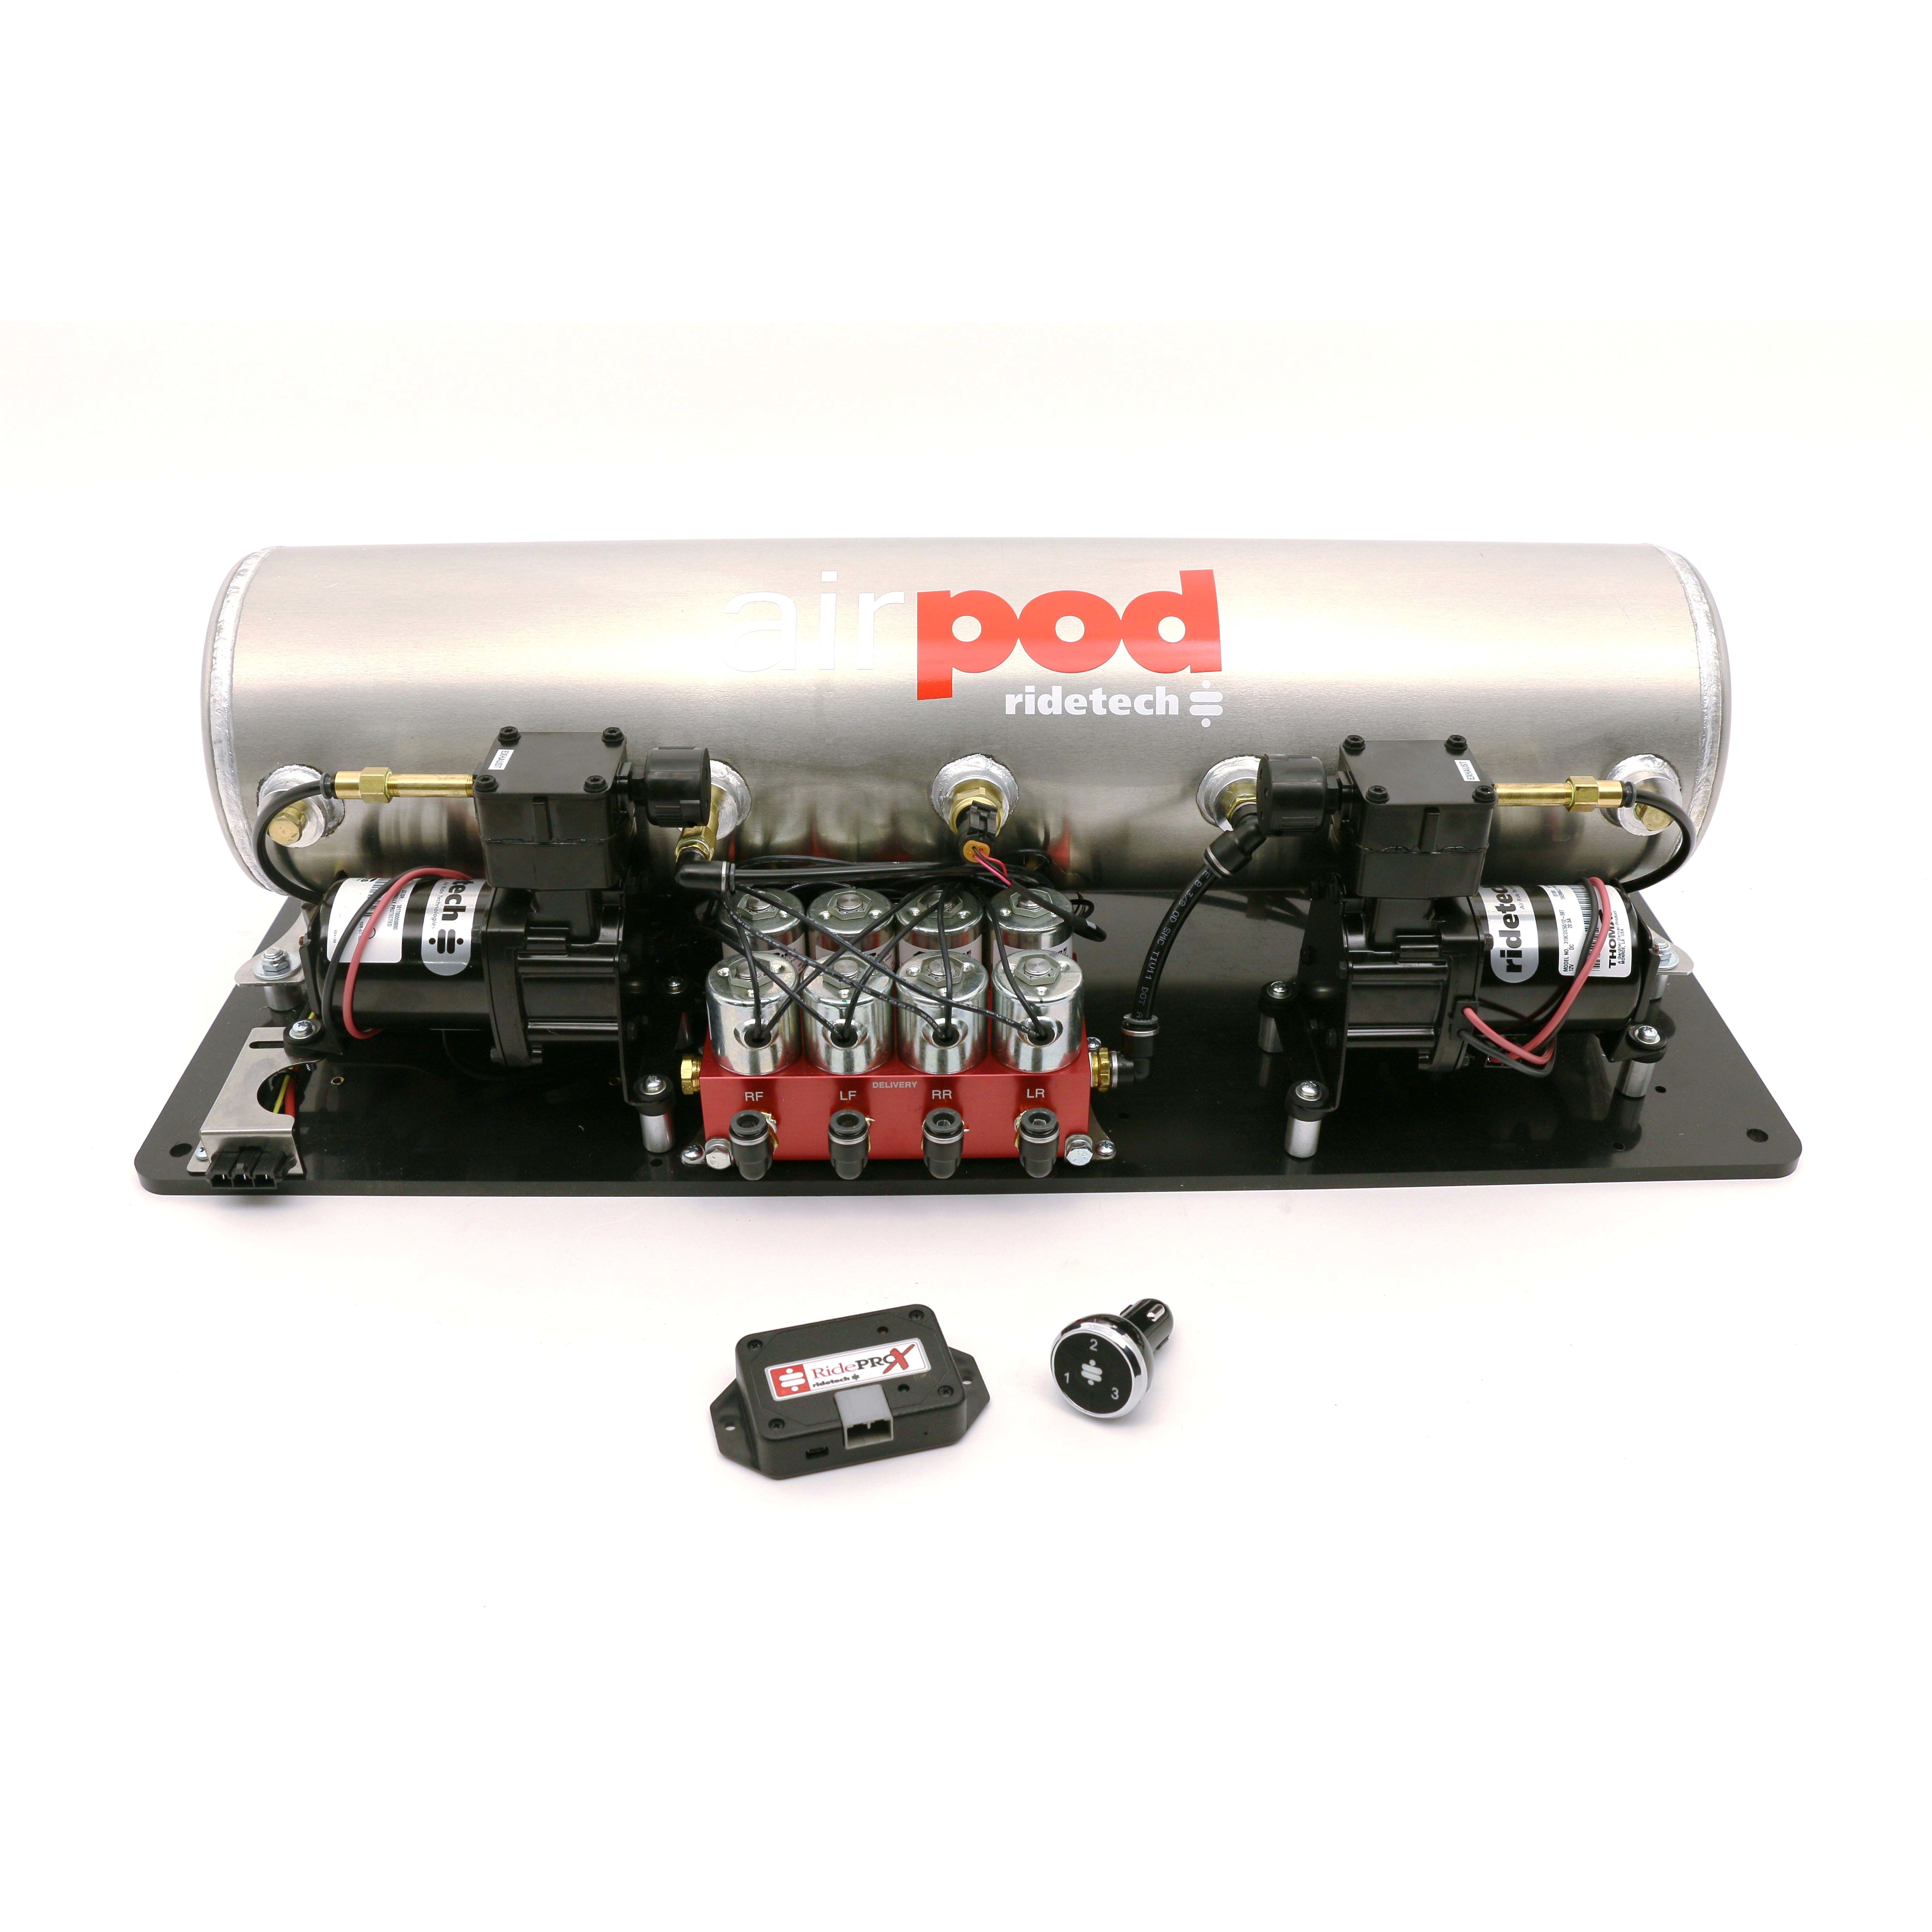 Ridetech 30414700 Air Compressor, Big Red AirPod, Suspension, 5 gal, 150 psi Max, 12V, Digital 4 Corner Gauge, Controls / Fittings / Lines / Tank, Ridetech Air Spring Kits, Kit